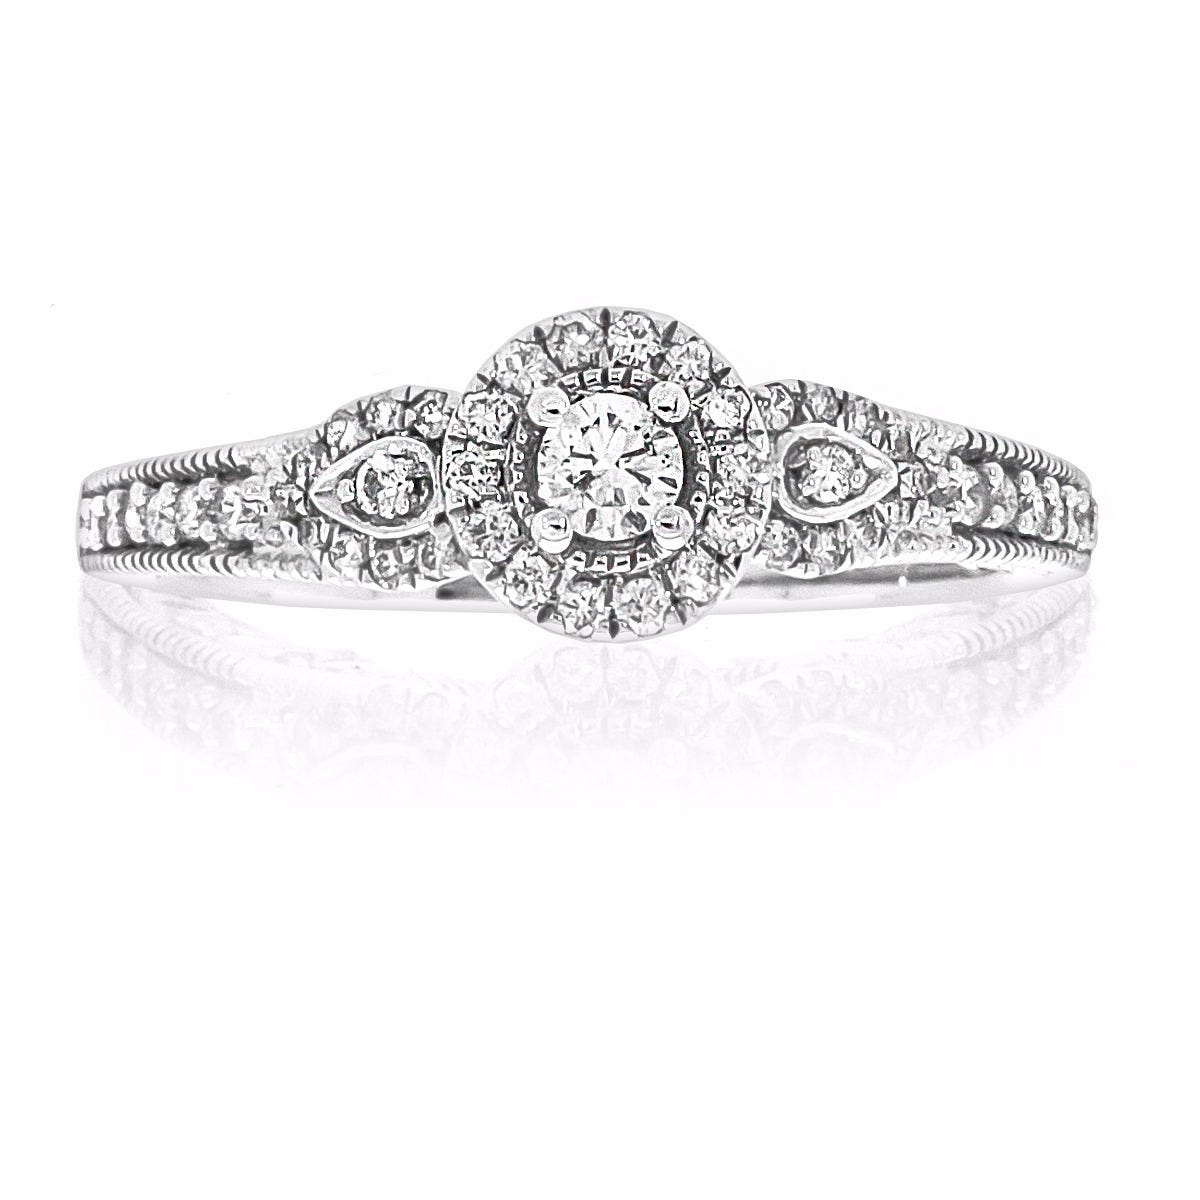 Abigail. Diamond Halo Engagement Ring in 14k Gold